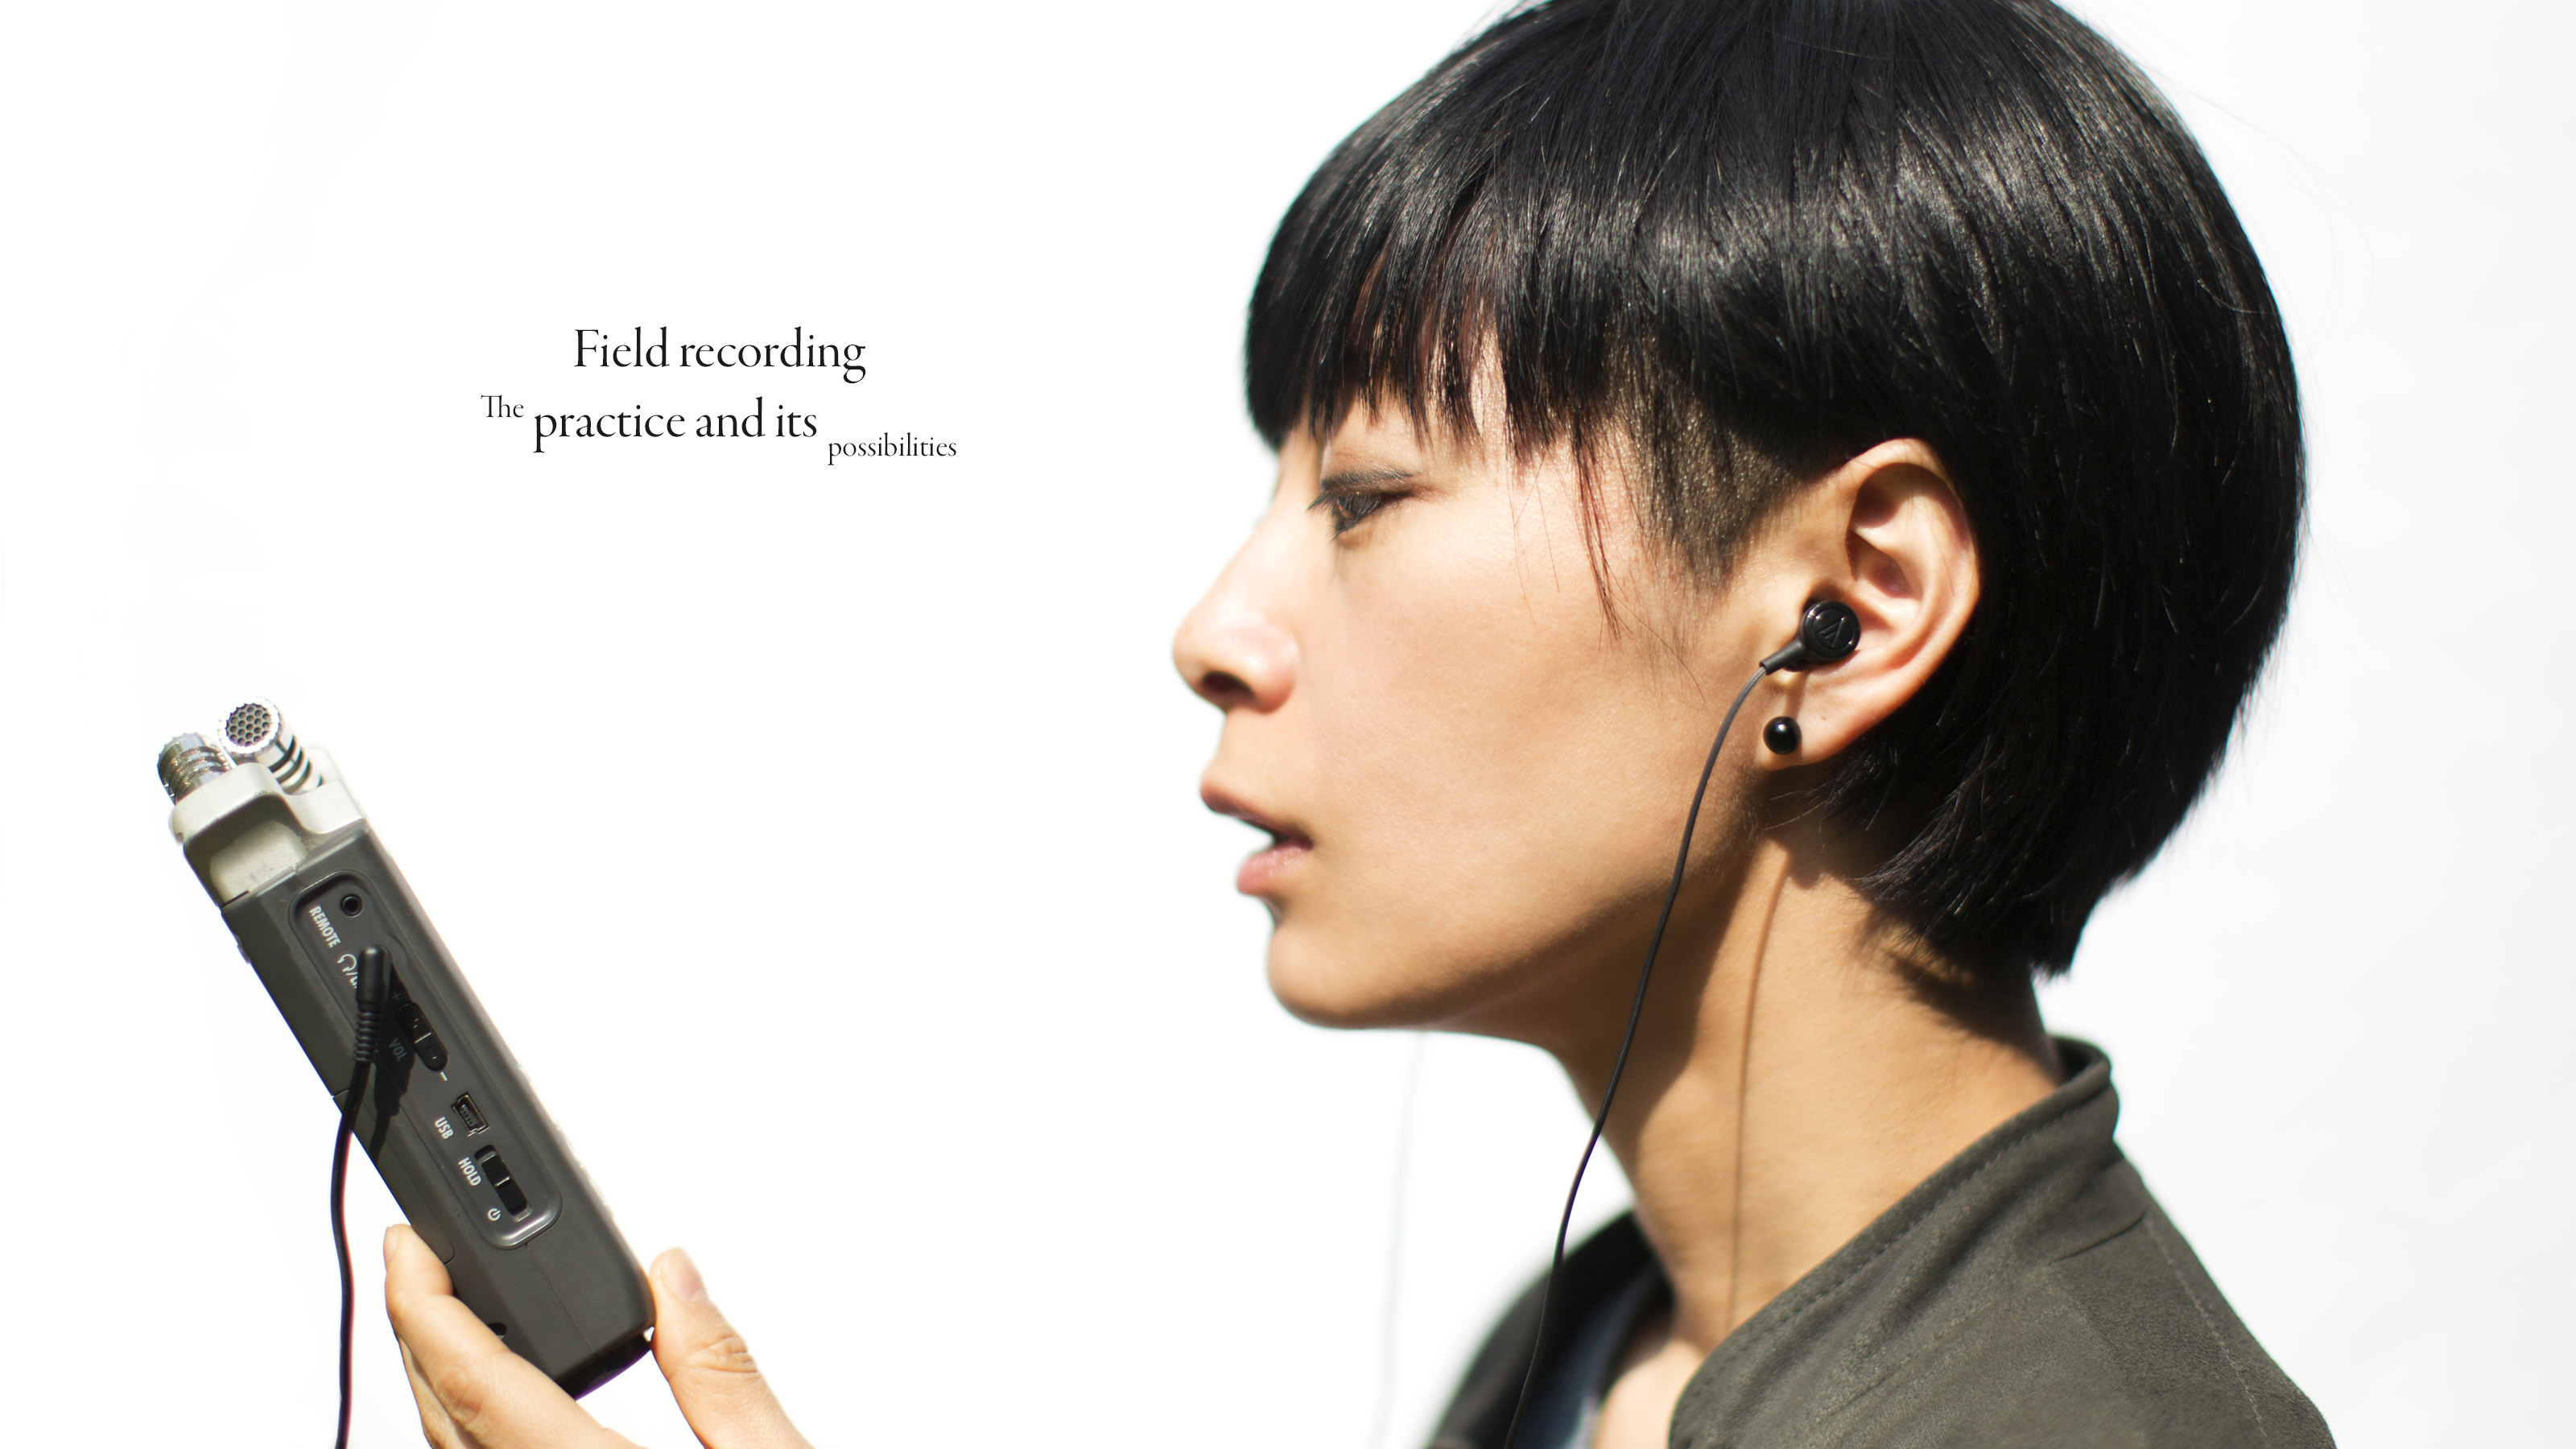 Field recording: The practice and its possibilities